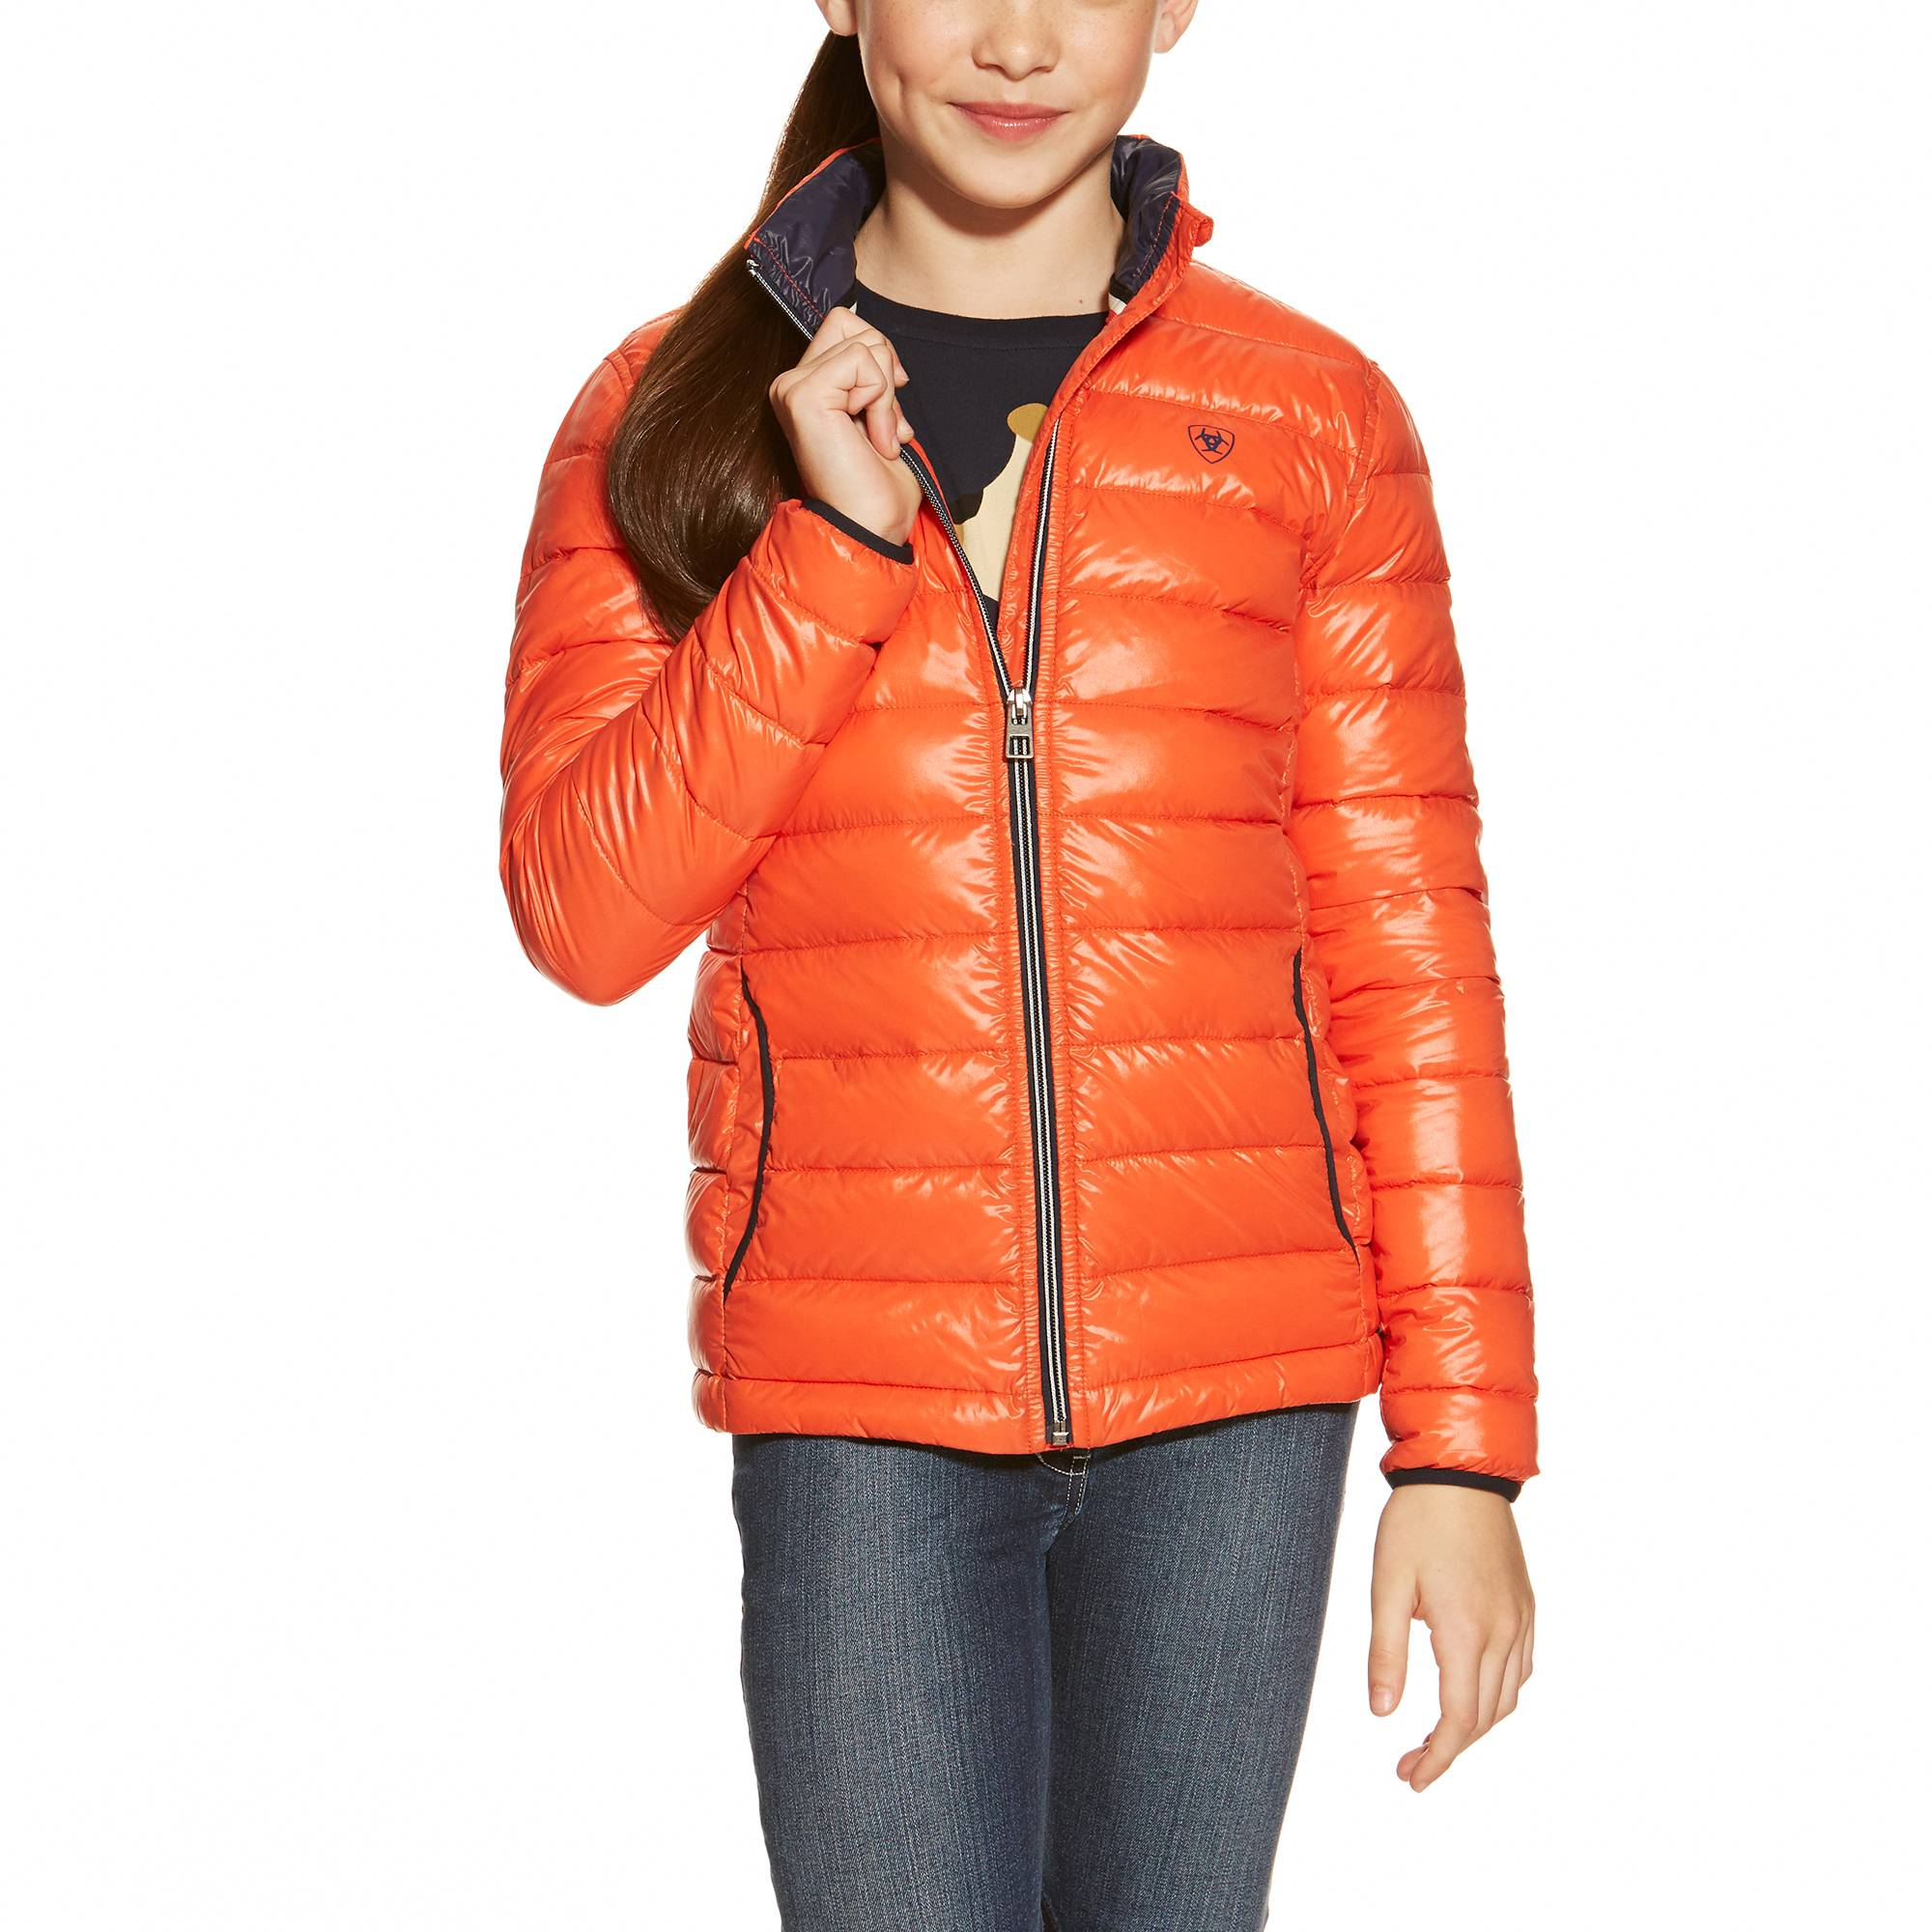 Ariat Ideal Jacket - Girls - Red Coral